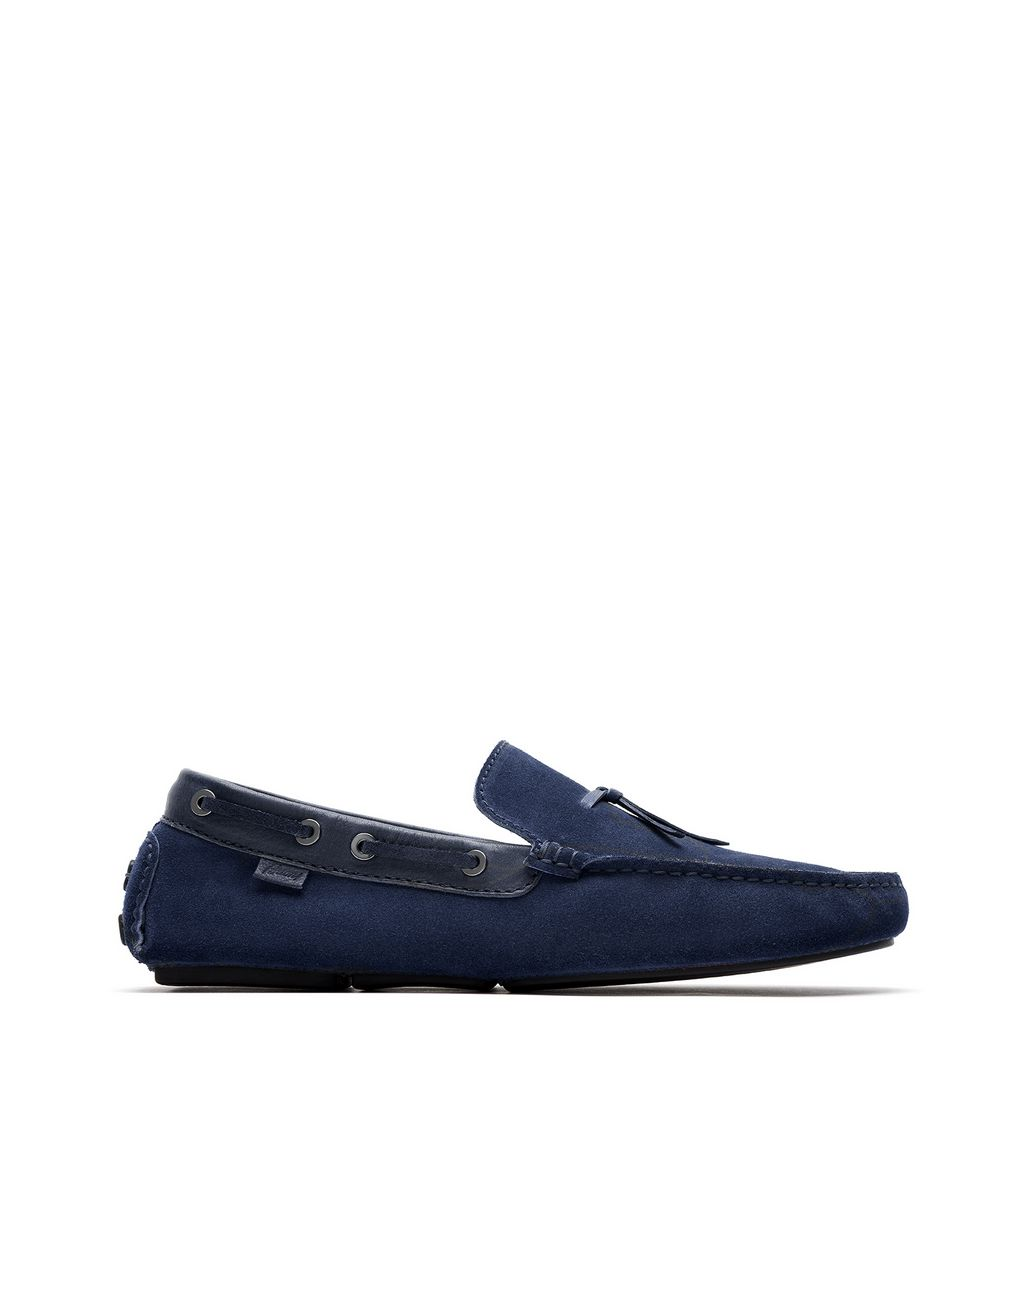 BRIONI Navy-Blue Unlined Calf Suede Loafer Loafers U f